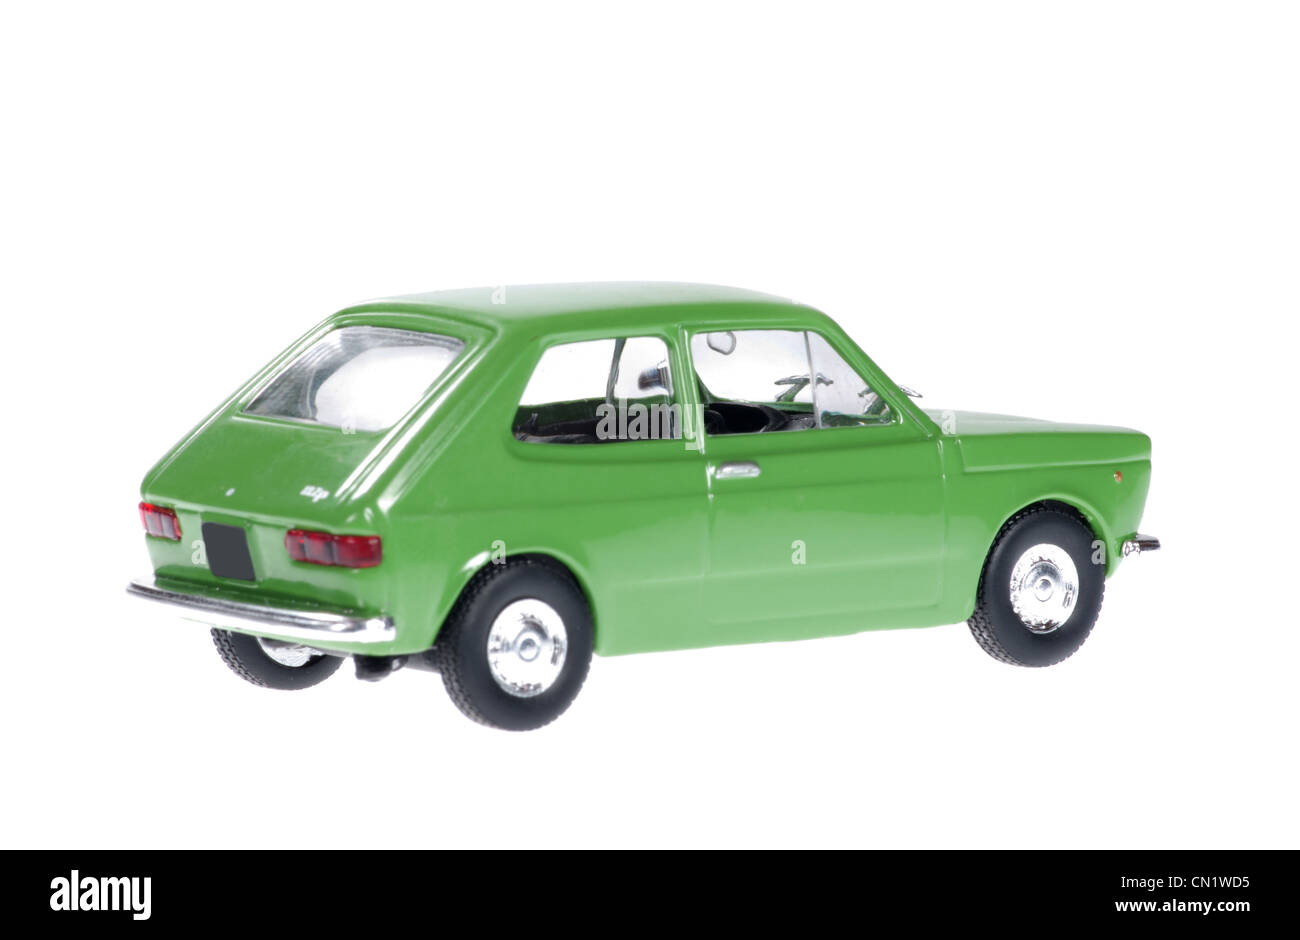 Fiat 127 p old small car Stock Photo: 47370433 - Alamy